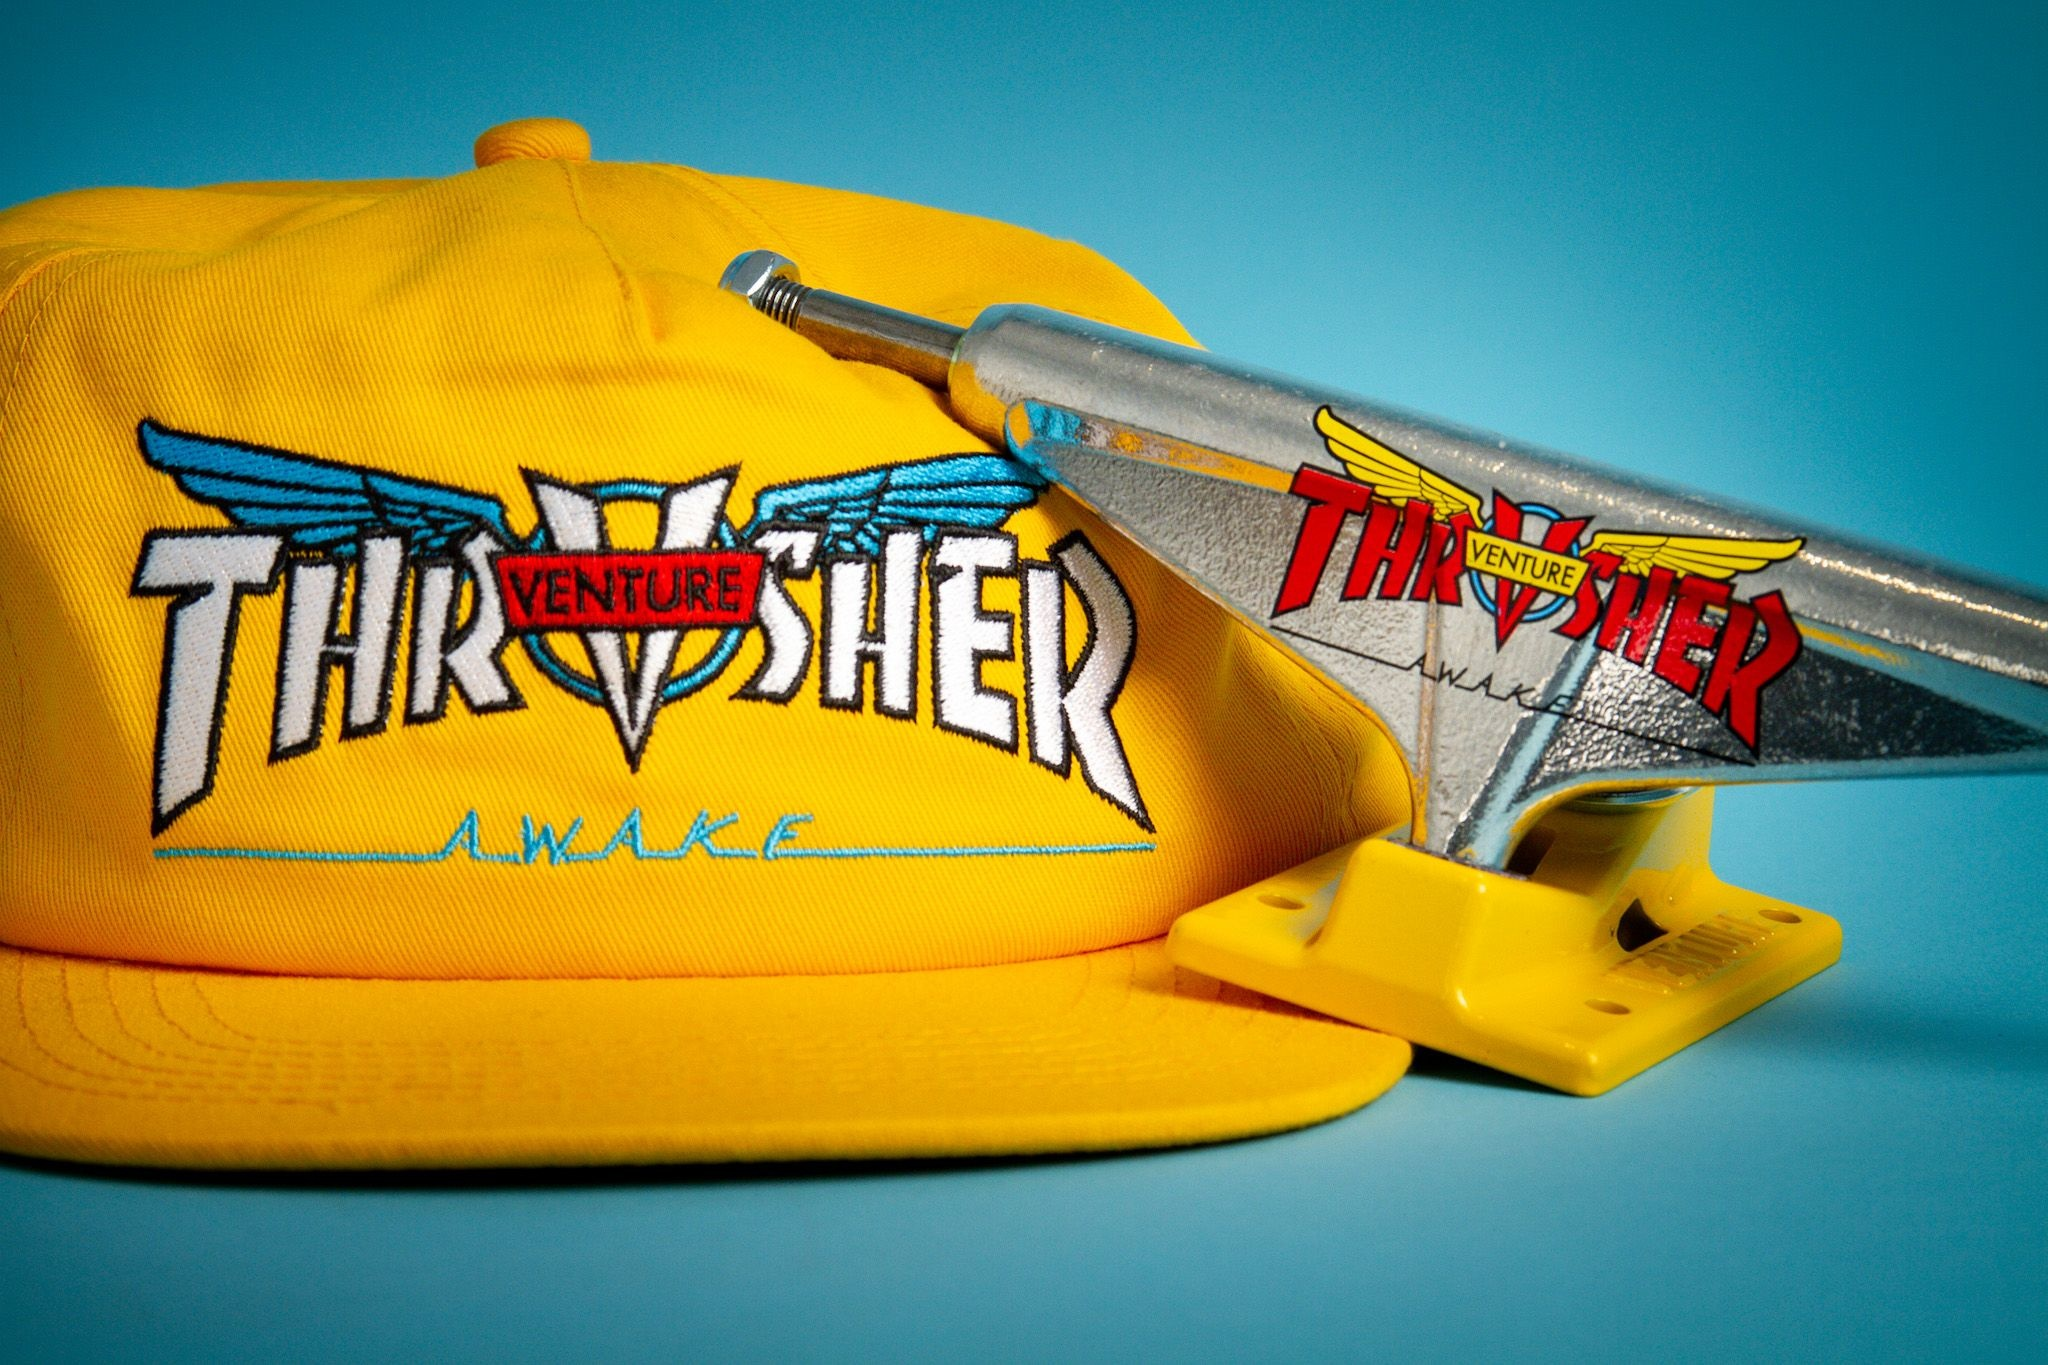 Thrasher x Venture Trucks Collection